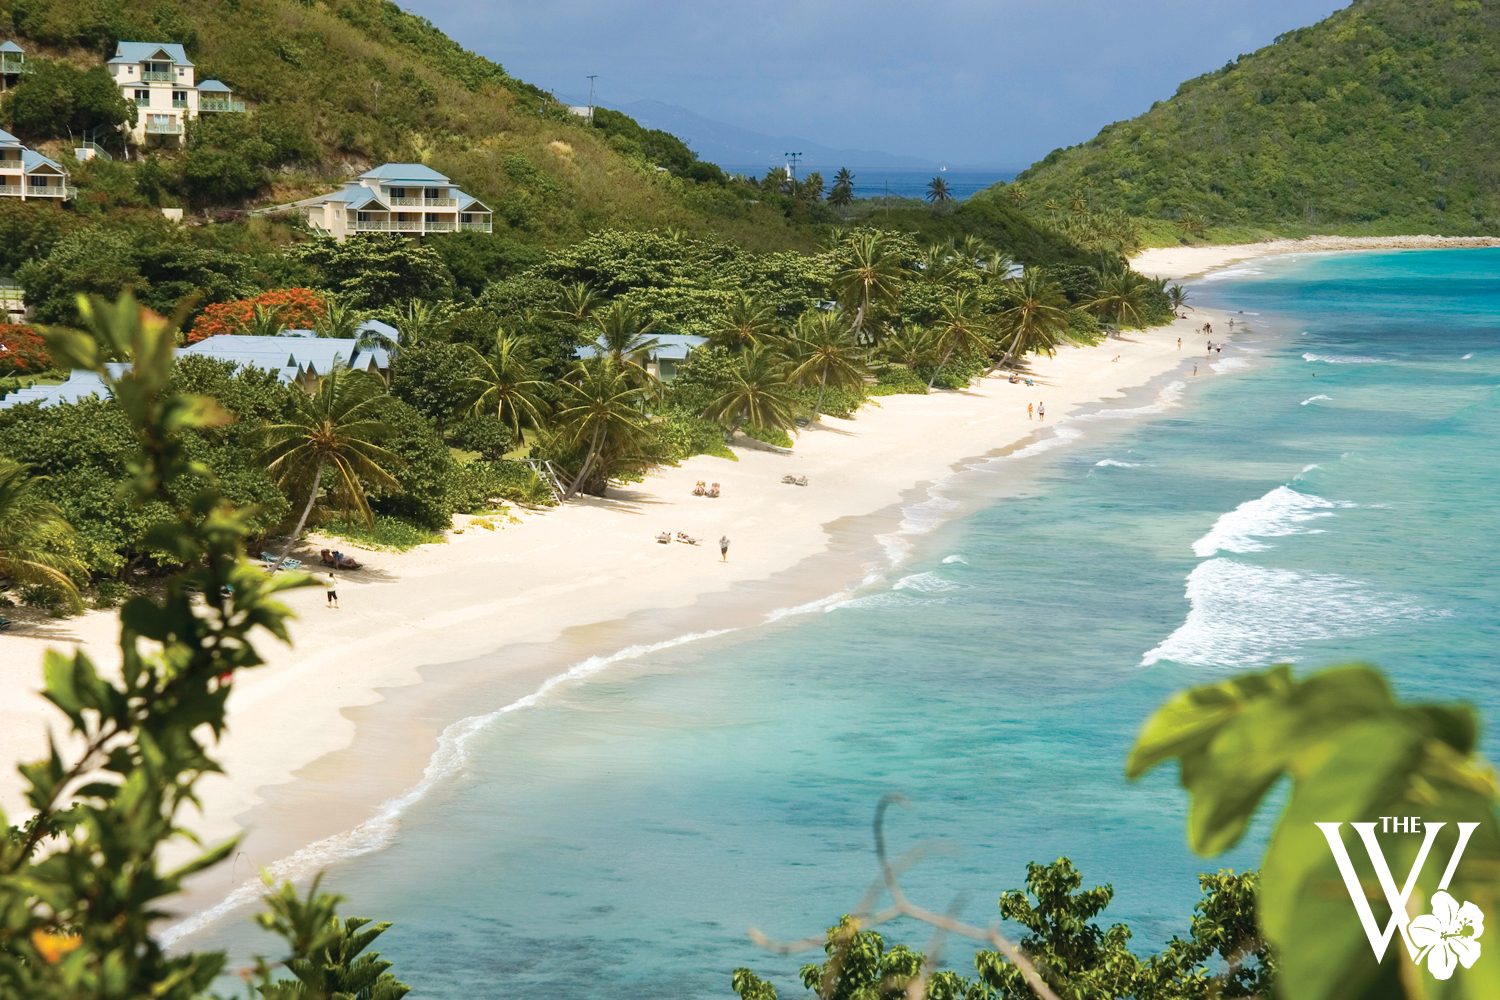 The Ultimate Beach Tour Beaches Of The British Virgin Islands